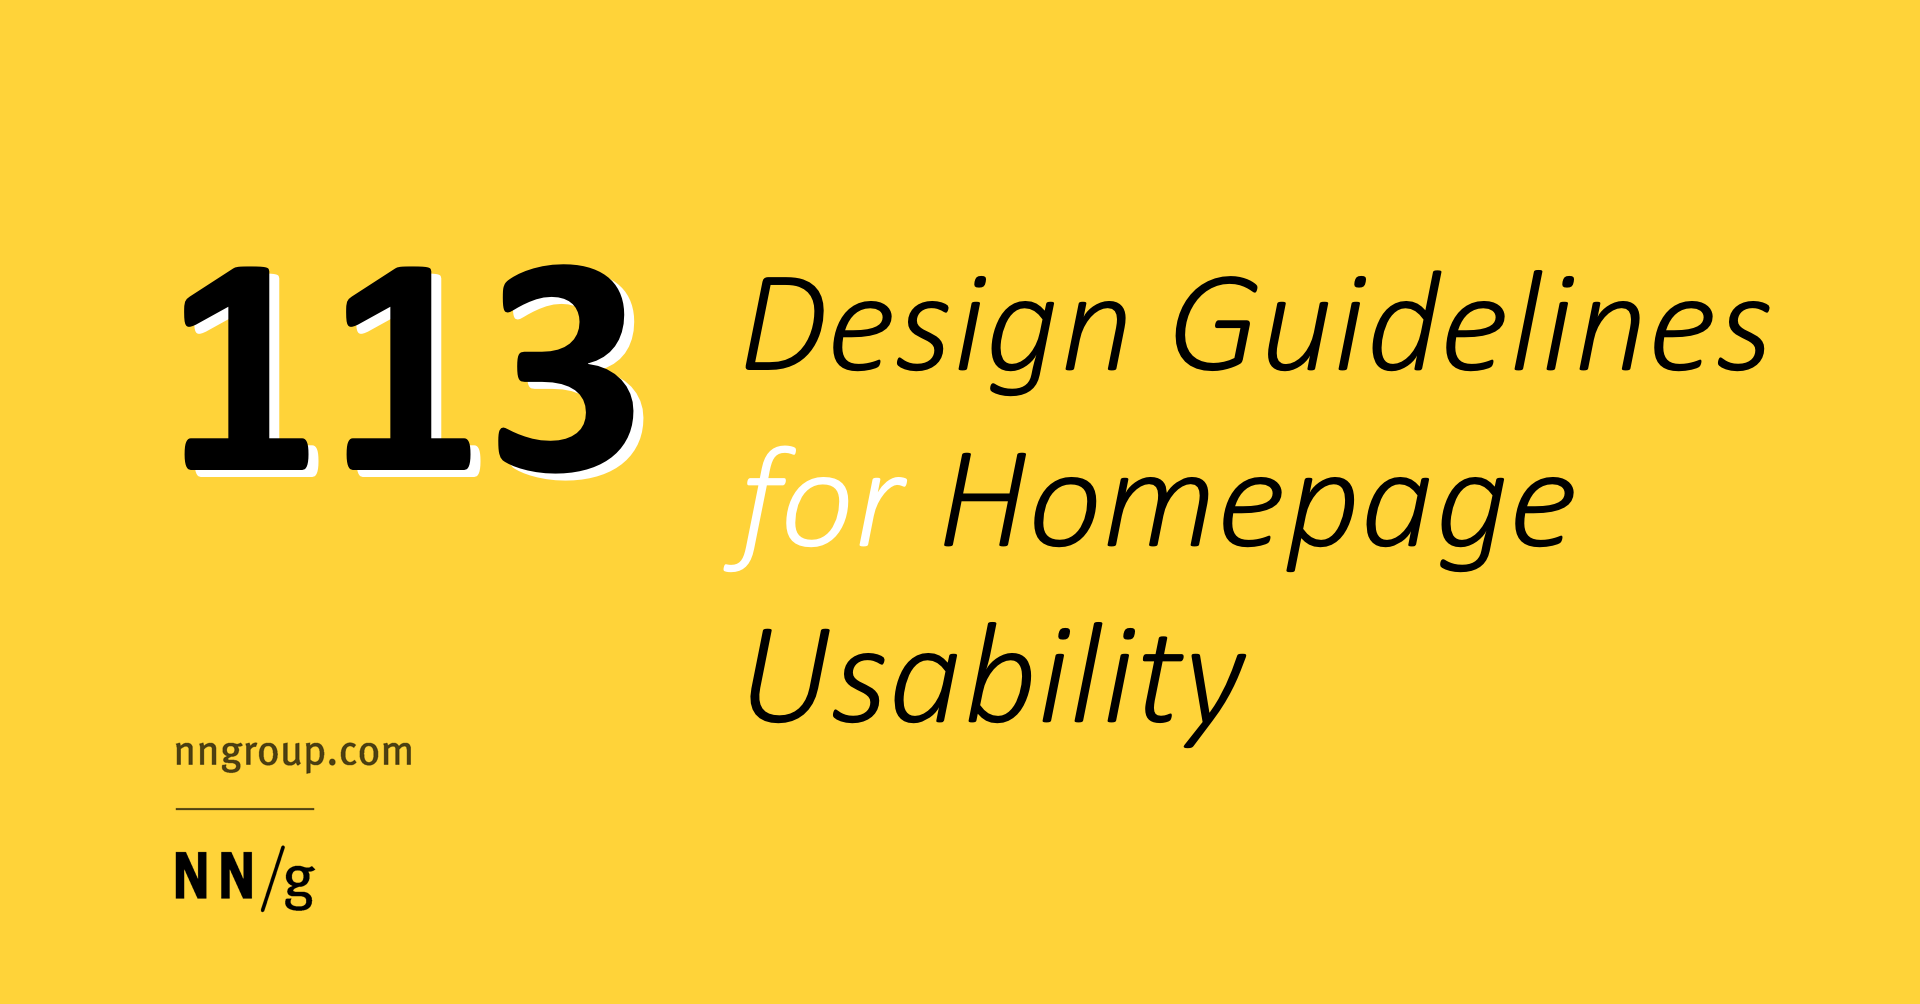 113 Design Guidelines For Homepage Usability Jakob Nielsen